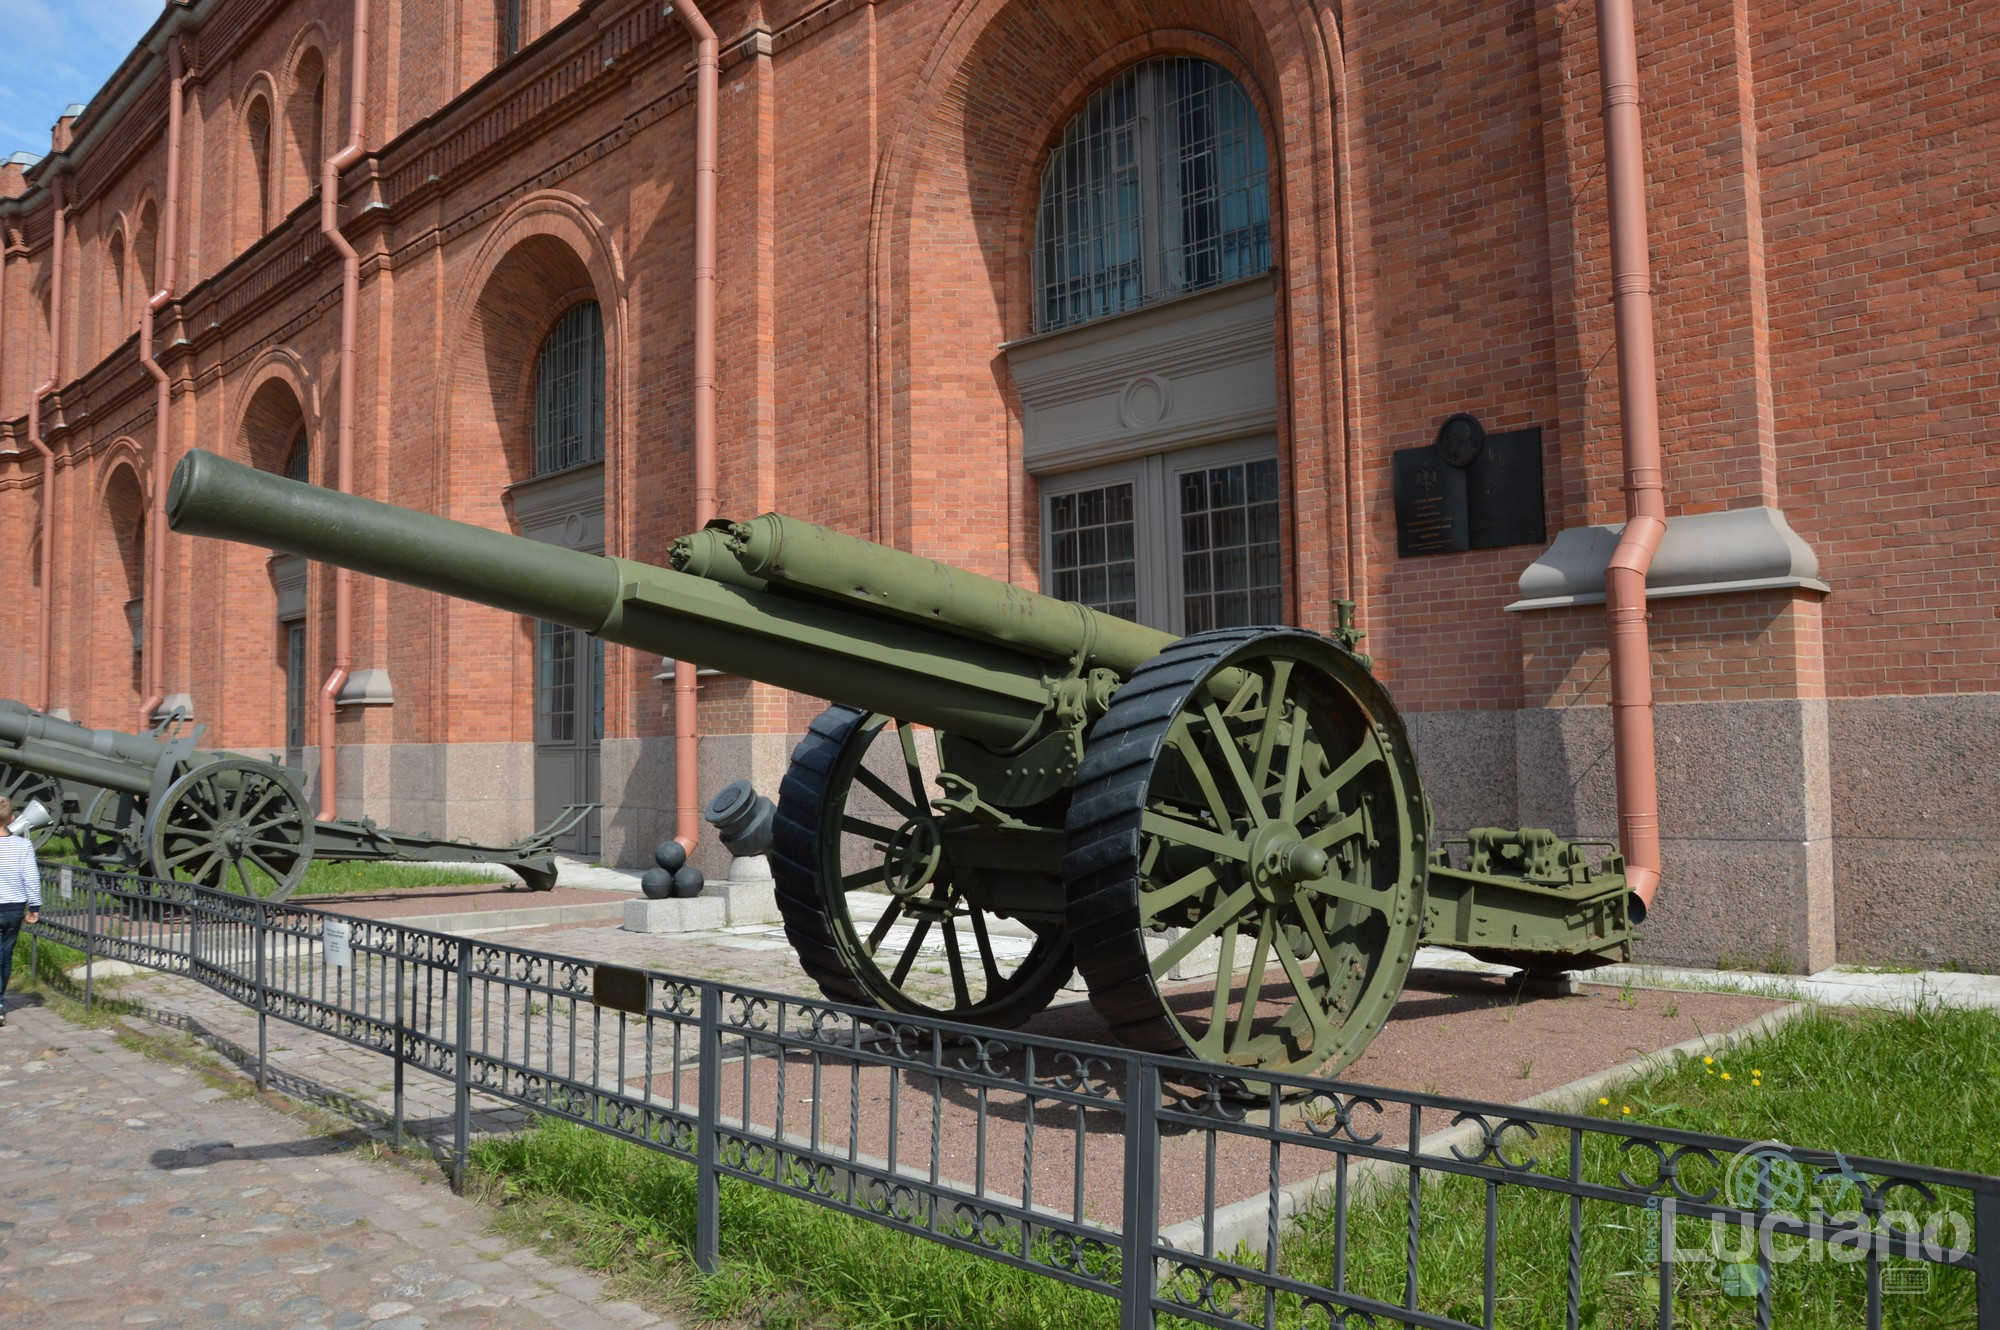 Military-Historical-Museum-of-Artillery-Engineer-and-Signal-Corps-St-Petersburg-Russia-Luciano-Blancato- (30)